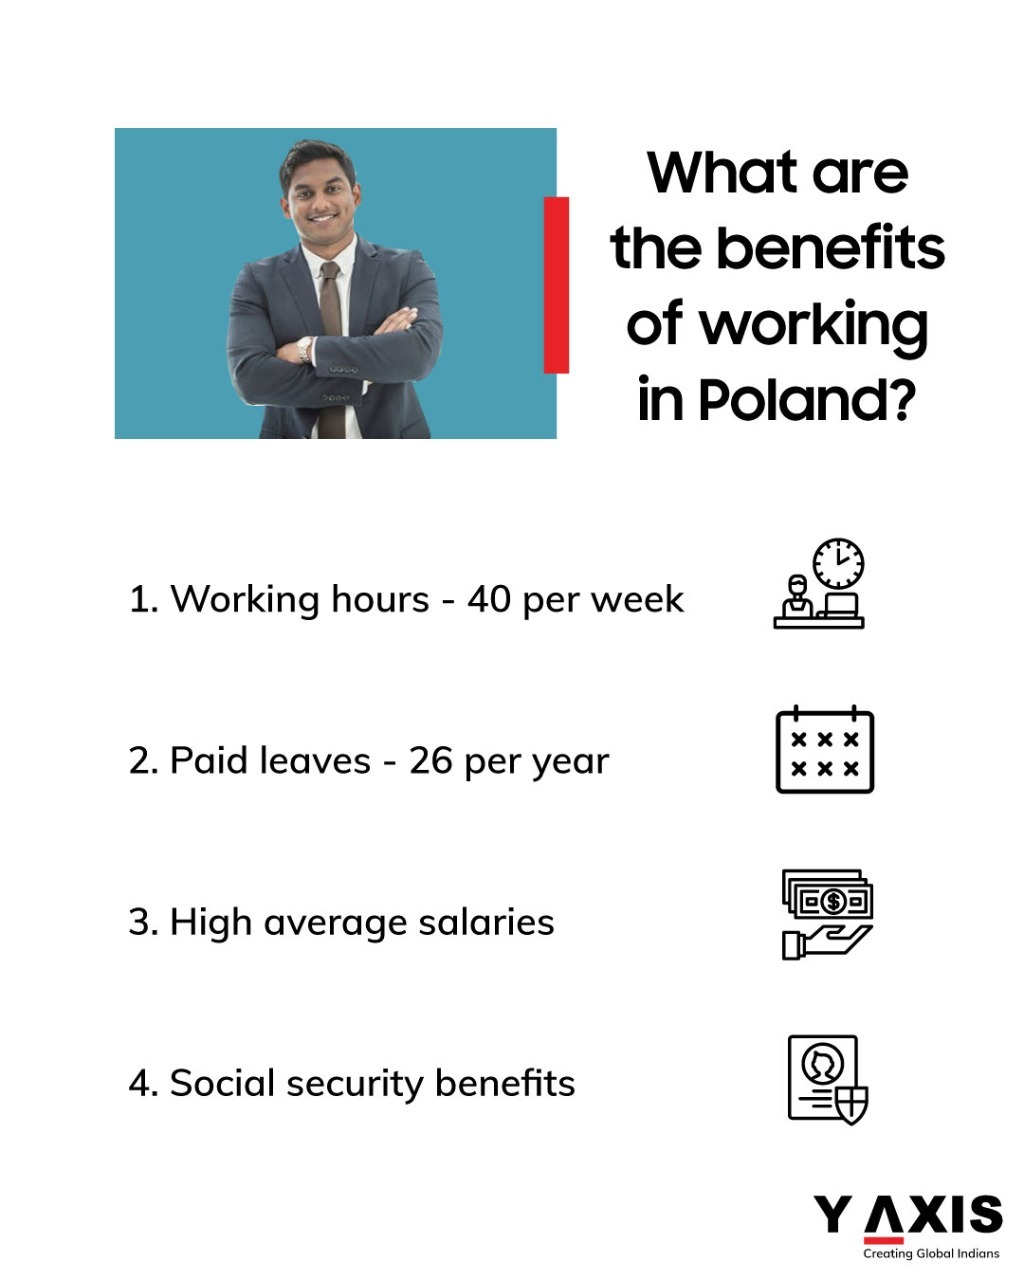 Here are the benefits you will get if you work overseas in Poland